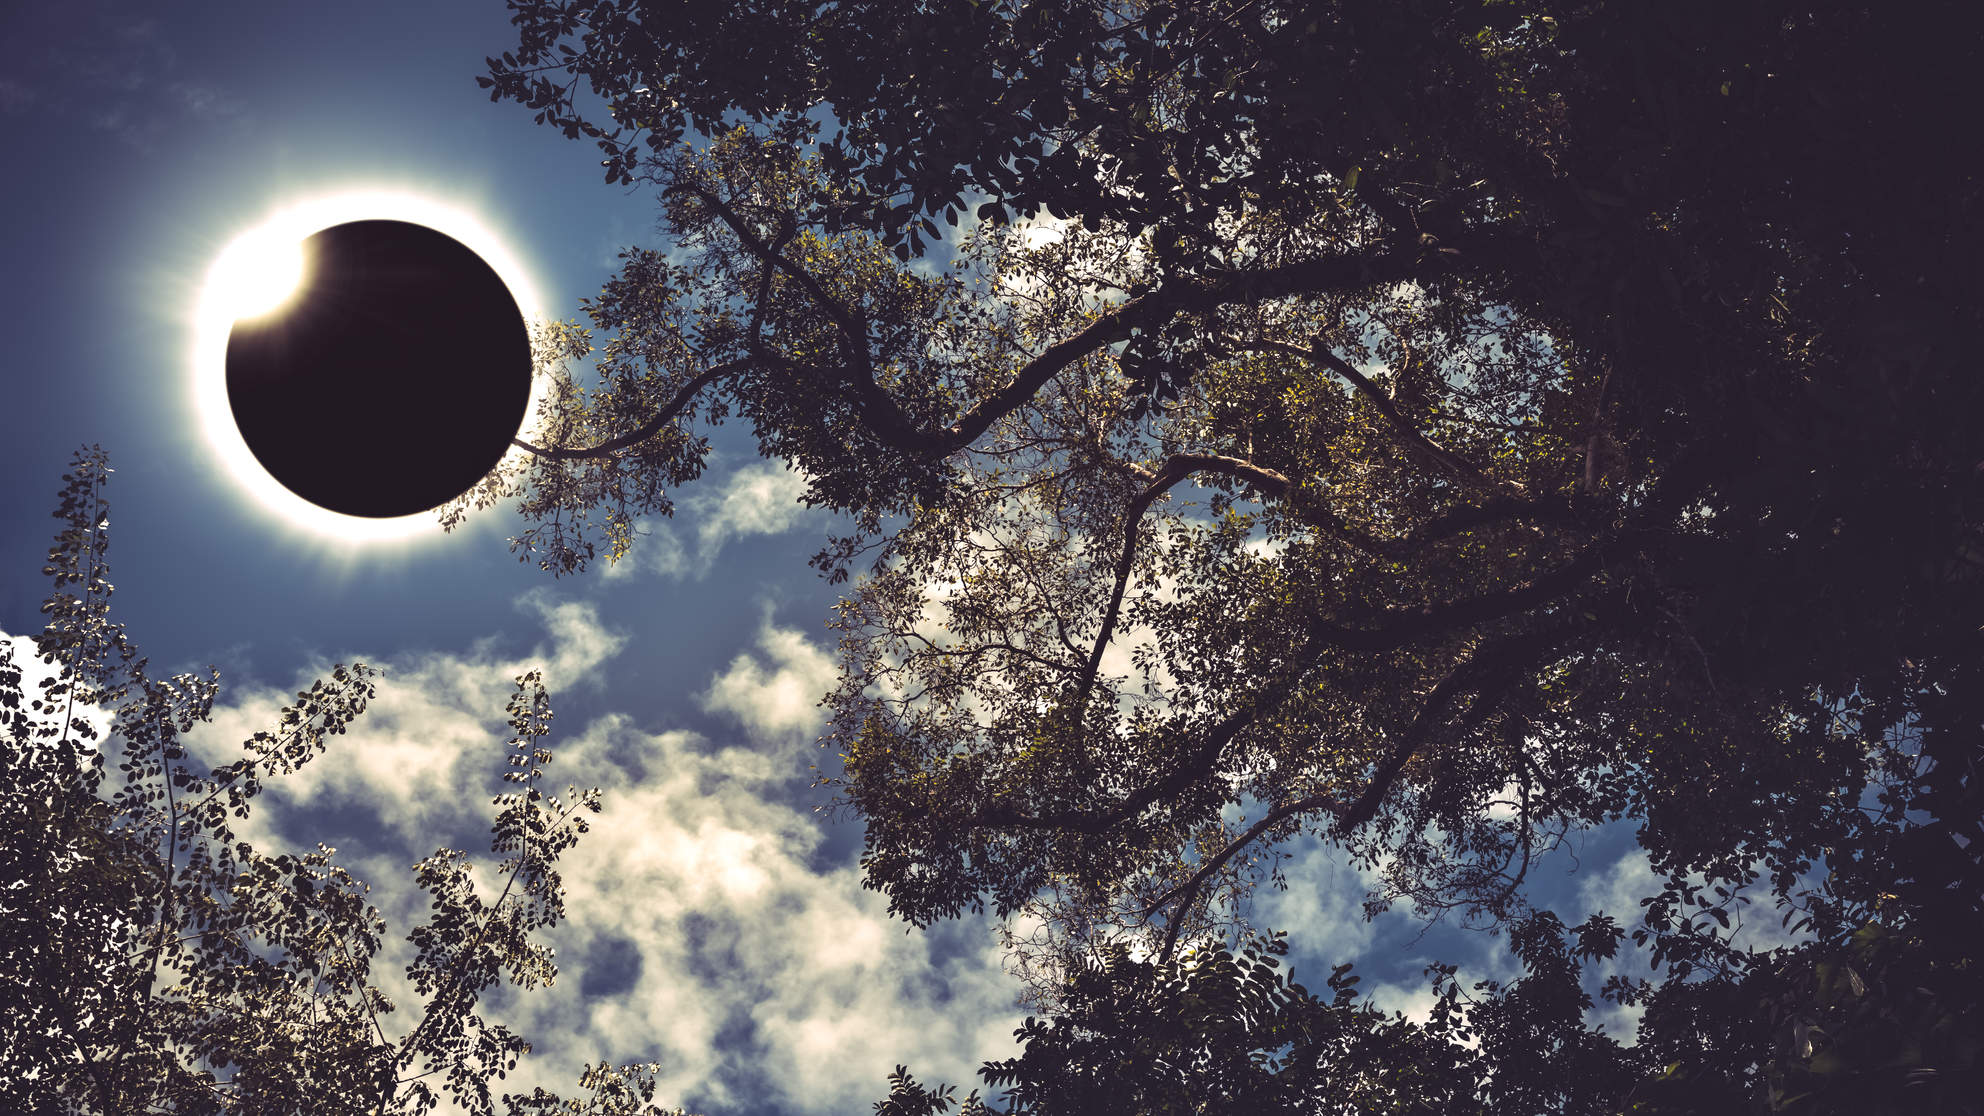 solar-eclipse-sky-trees